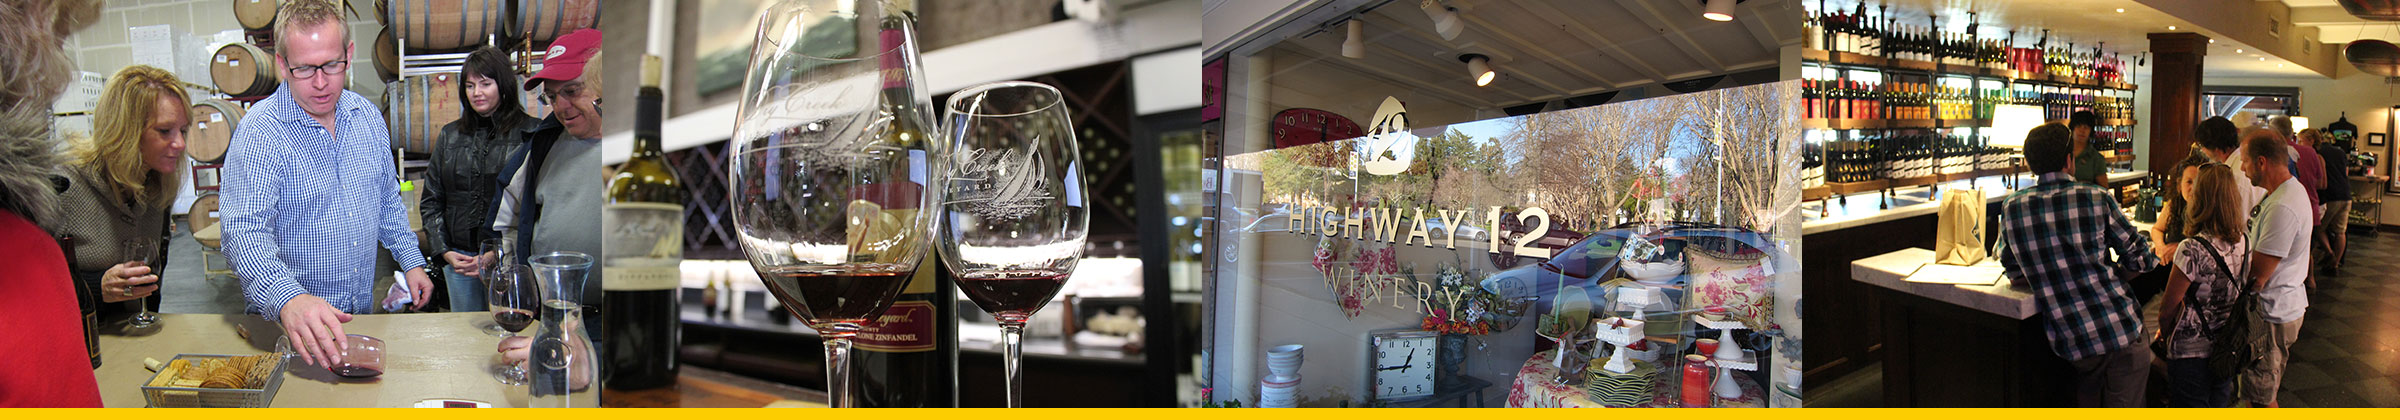 FREE Wine Tasting Coupons | Cheap Sonoma on a Budget | Local Wally's Guide  to Sonoma — Sonoma Tourist Guide